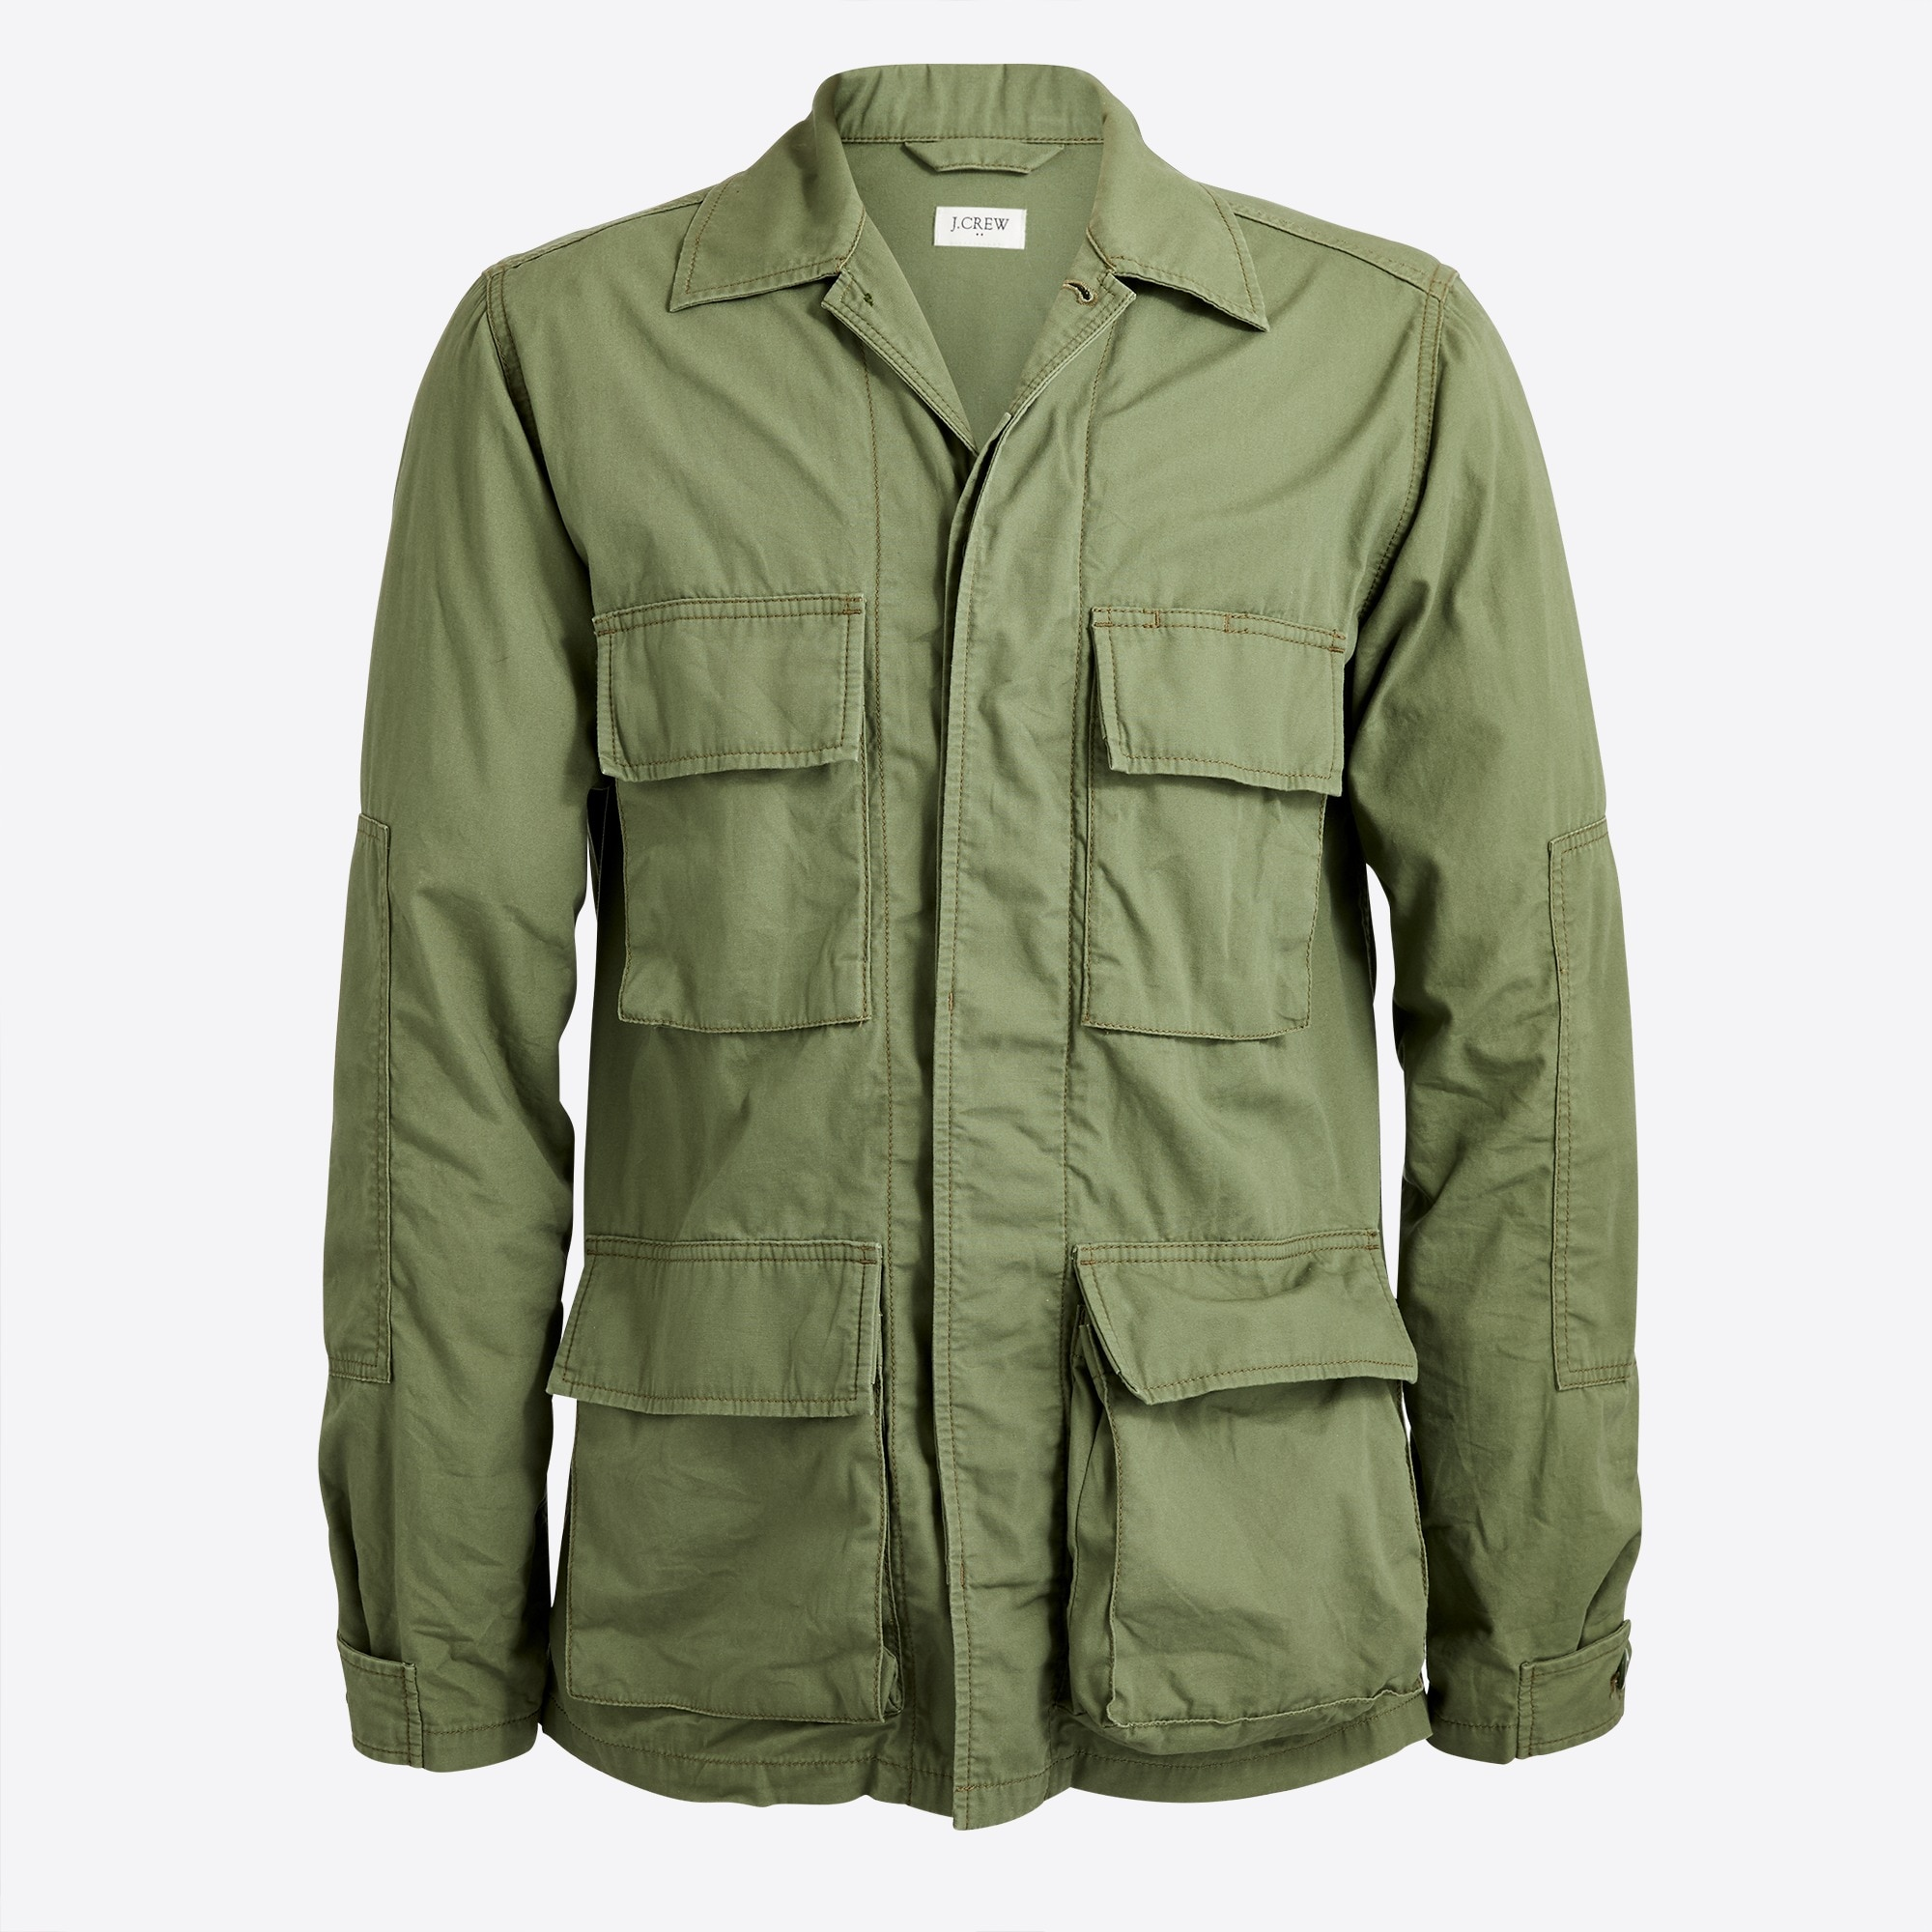 Image 2 for Field jacket